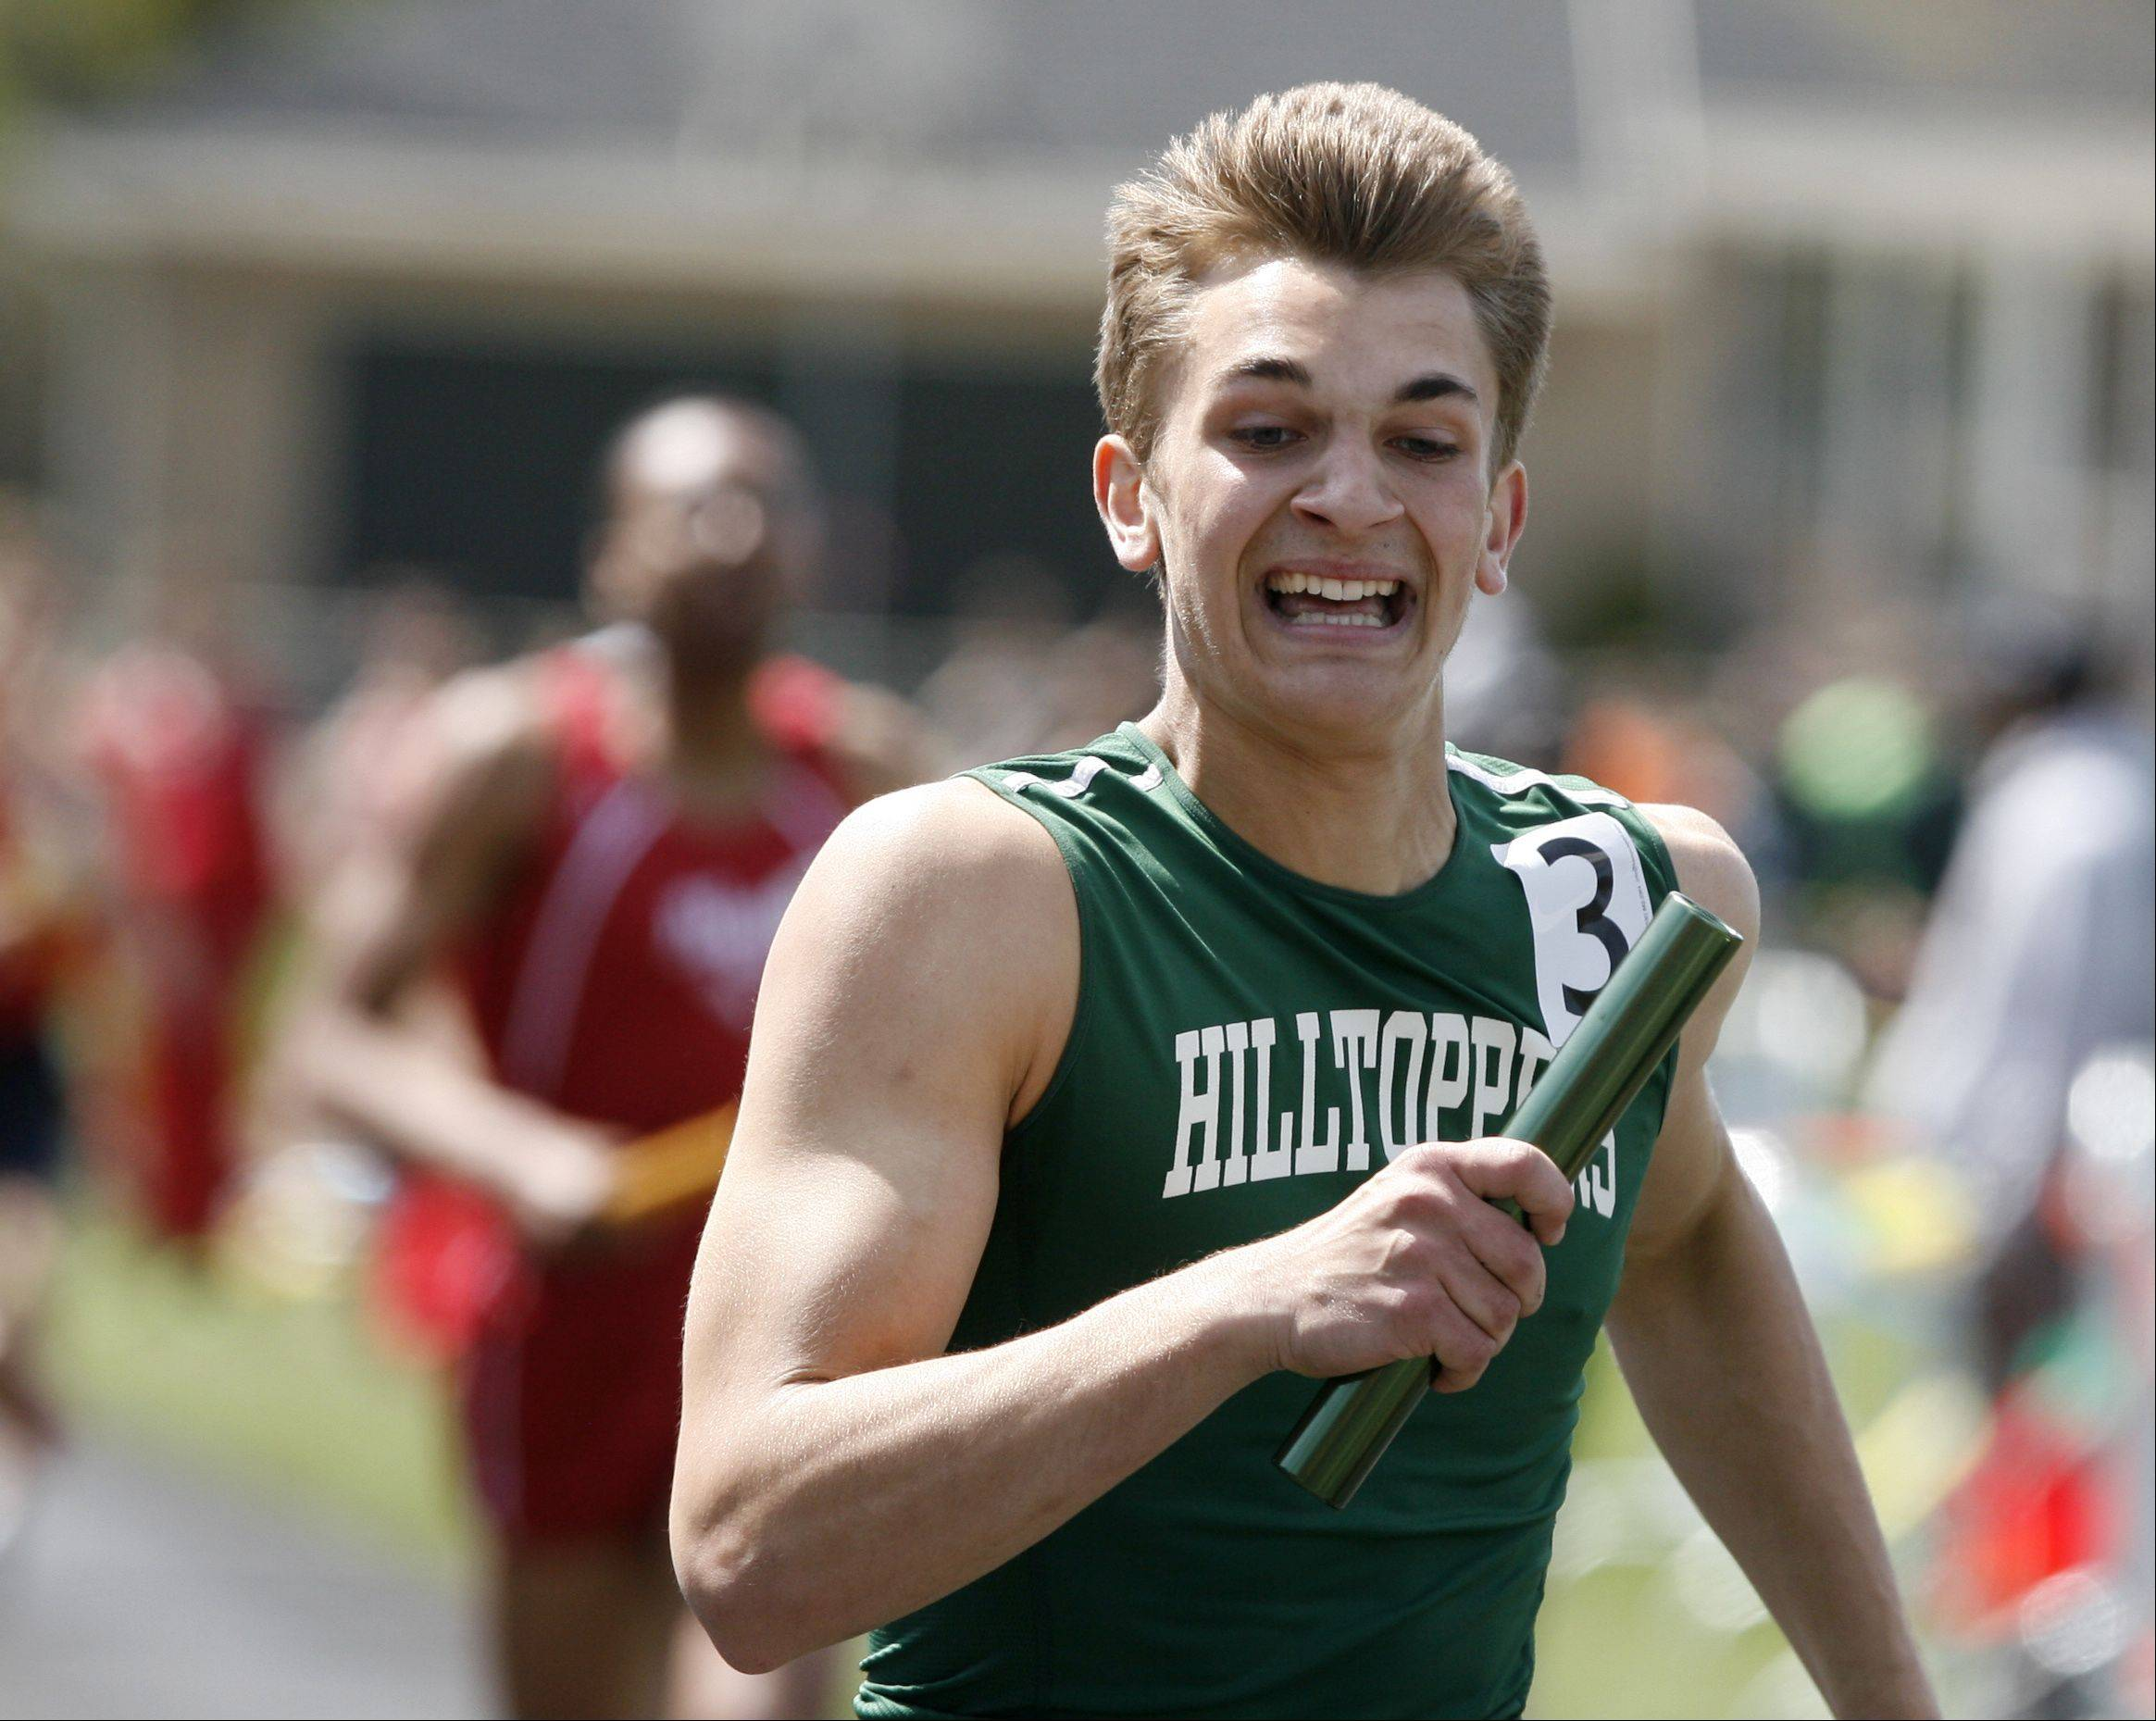 Glenbard West's Connor Schrauth anchors the 4 x 400 meter relay, during the final heat of the Glenbard West boys track invitational.